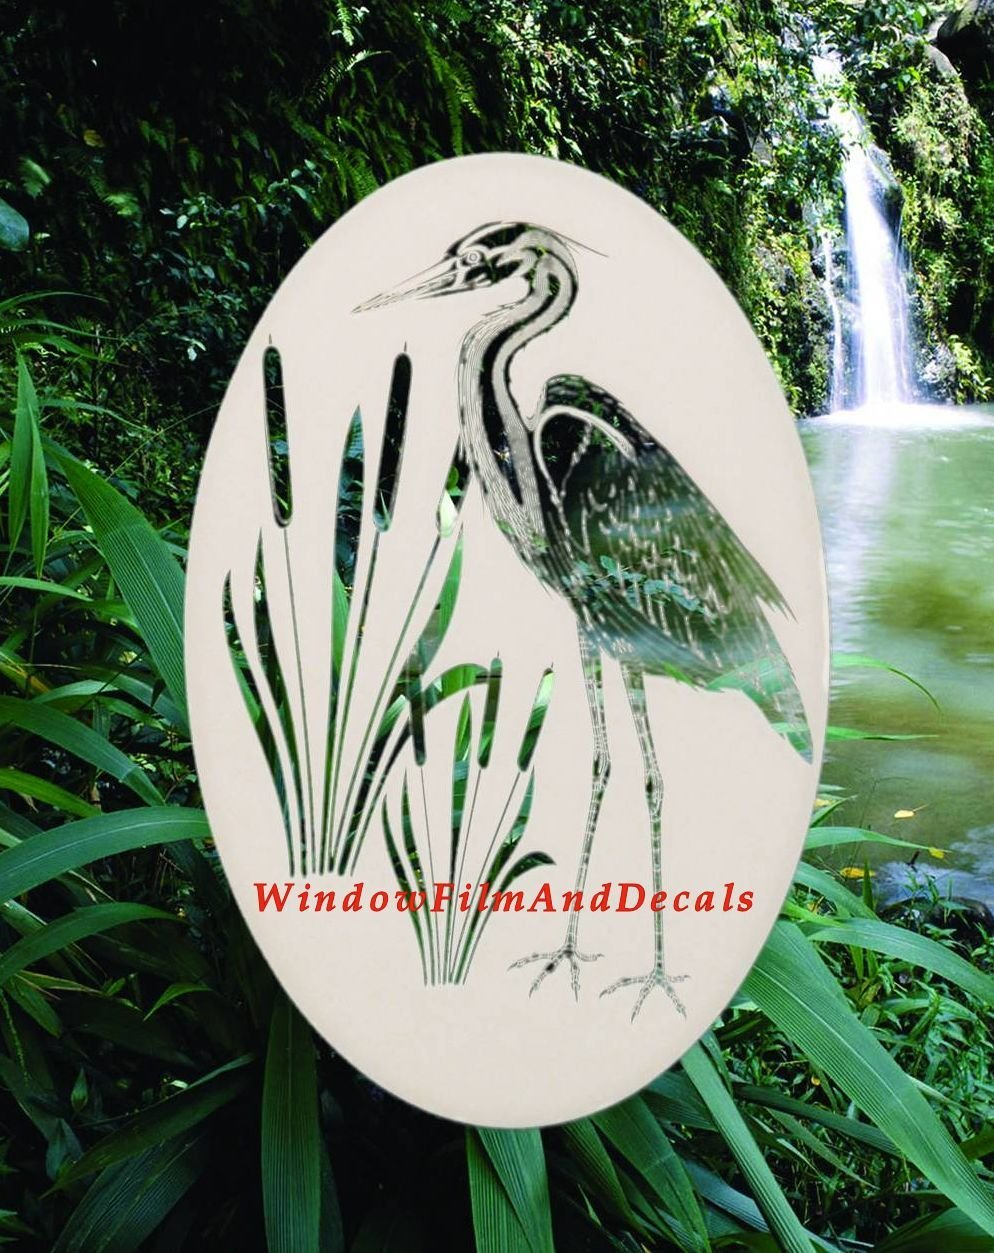 Oval Egret & Cattails Right Etched Window Decal Vinyl Glass Cling -21'' x 33'' - White with Clear Design Elements by Vinyl Etchings